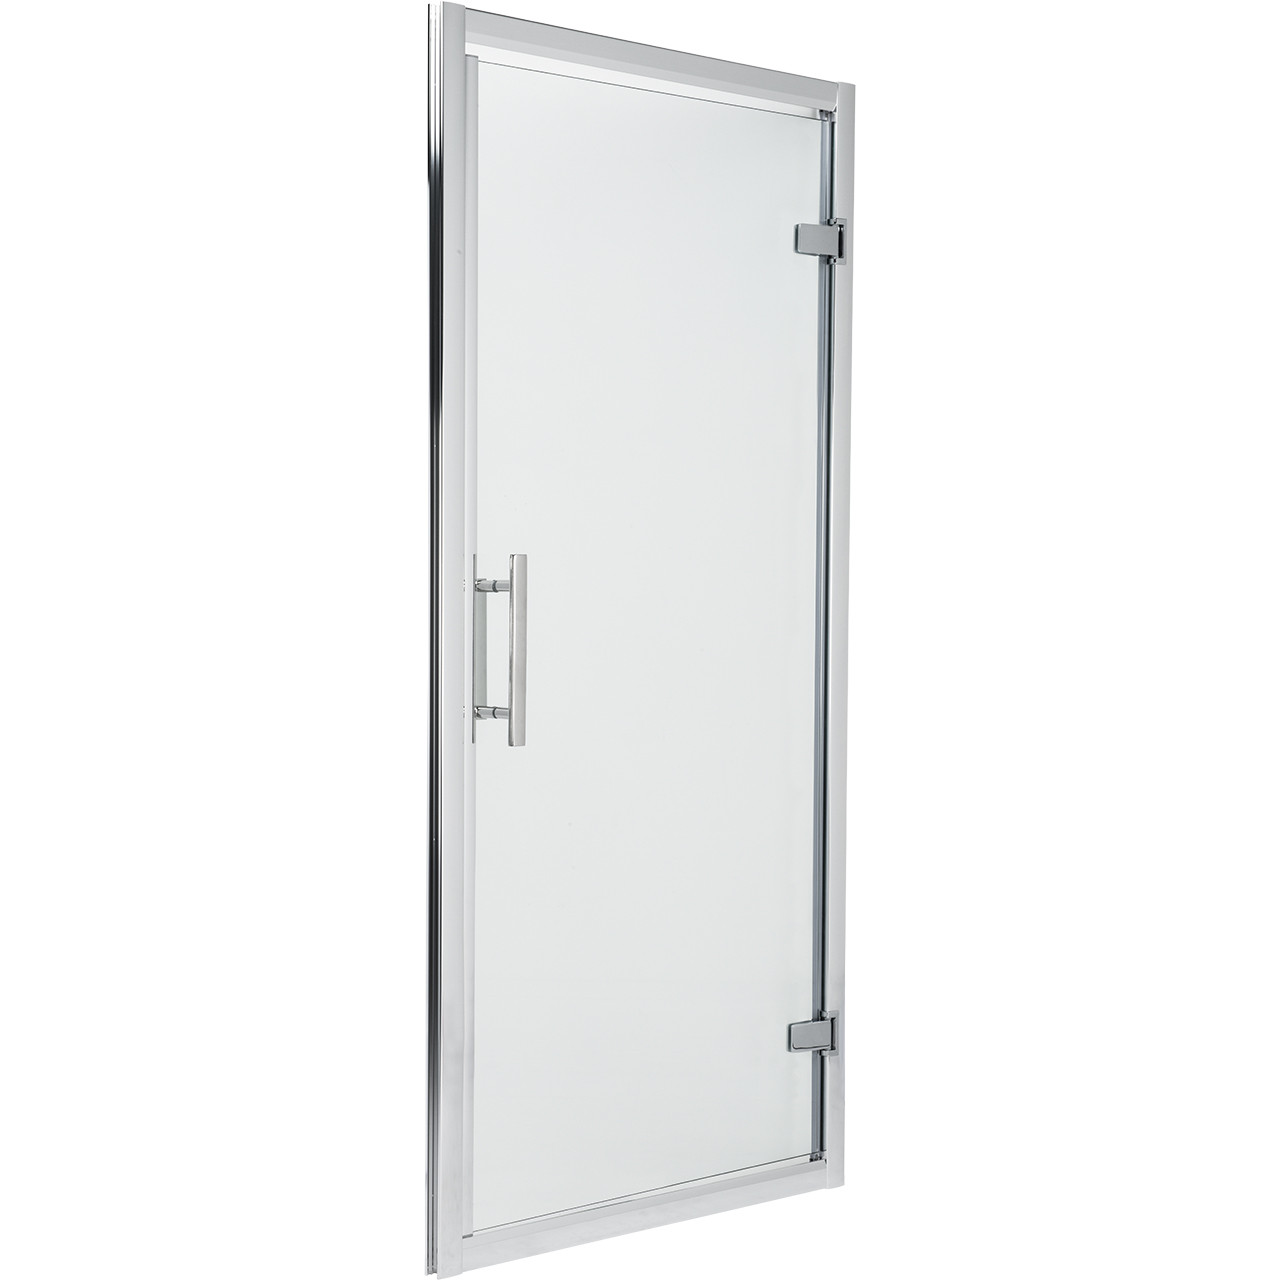 Series 8 Hinged Shower Door 900mm